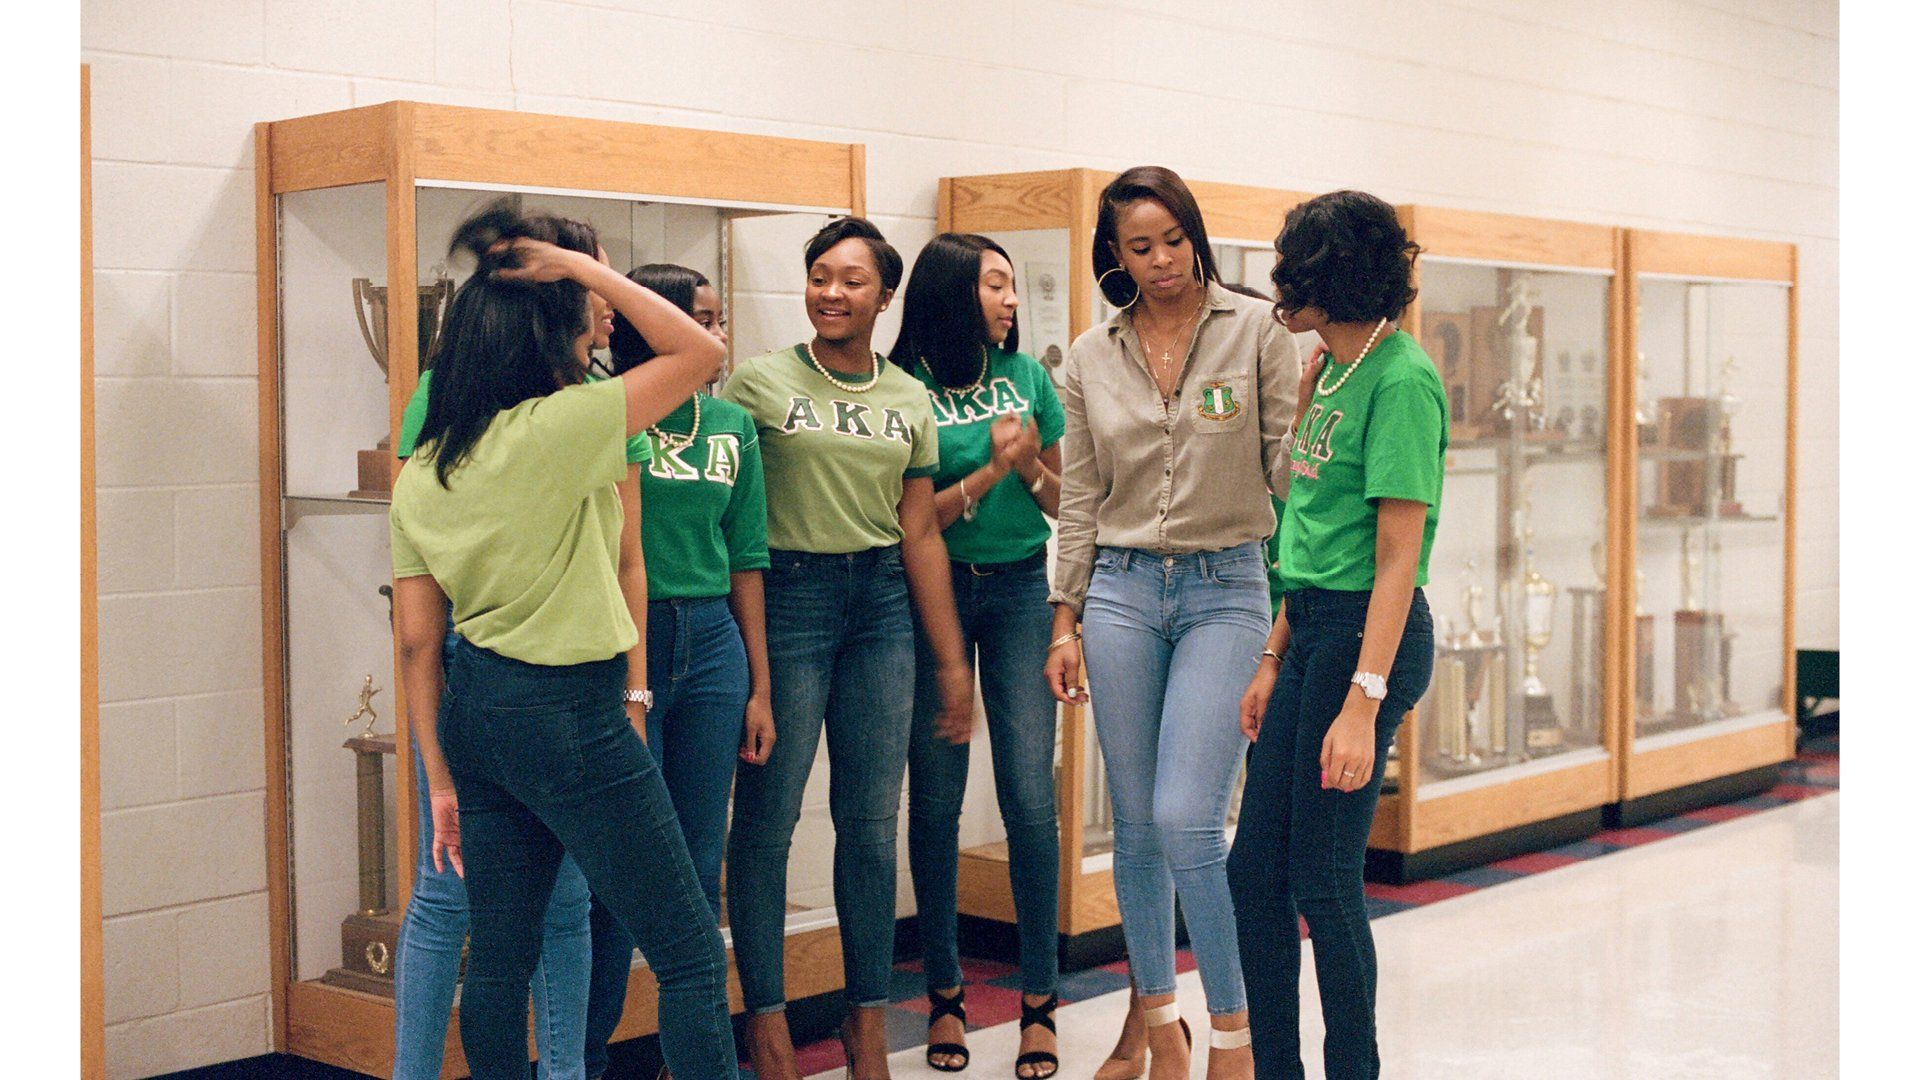 "American Women ""The Women of Alpha Kappa Alpha"" - LaMani Adkins, Sky Myers, Kandlar Rhodes, and Brianna Gaulding on the Morehouse College campus. Ph Mayan Toledano. 125 anniversary Vogue US - Not Only Twenty, fashion blog over 40"